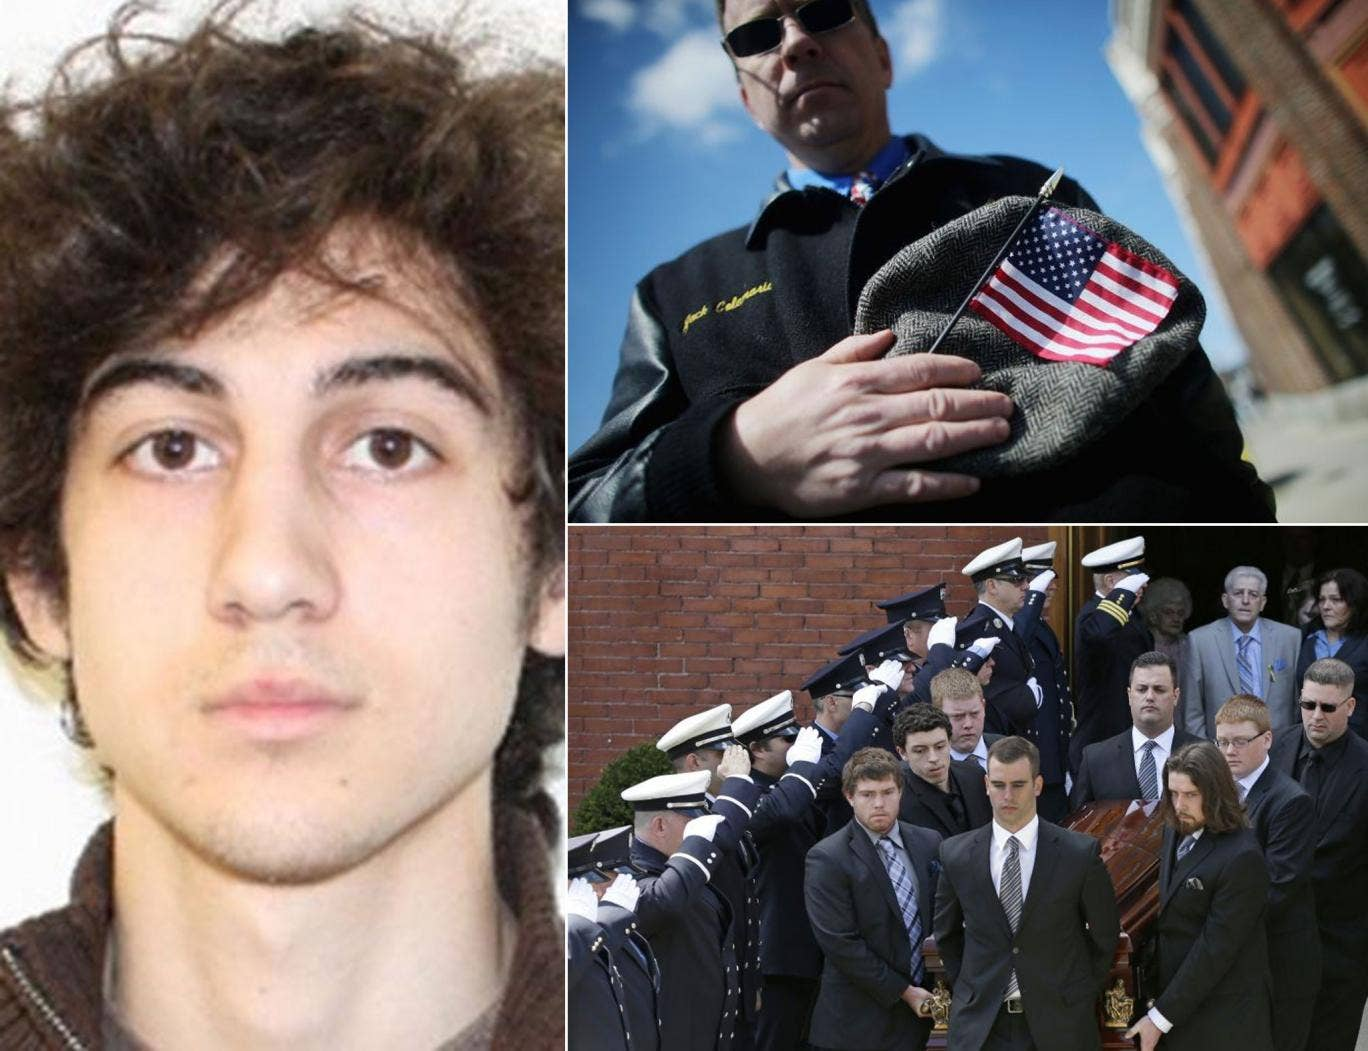 Boston bombing suspect Dzhokhar Tsaraev (main image) was charged by US federal prosecutors, on the same day that Boston laid to rest his alleged first victim, Krystle Campbell